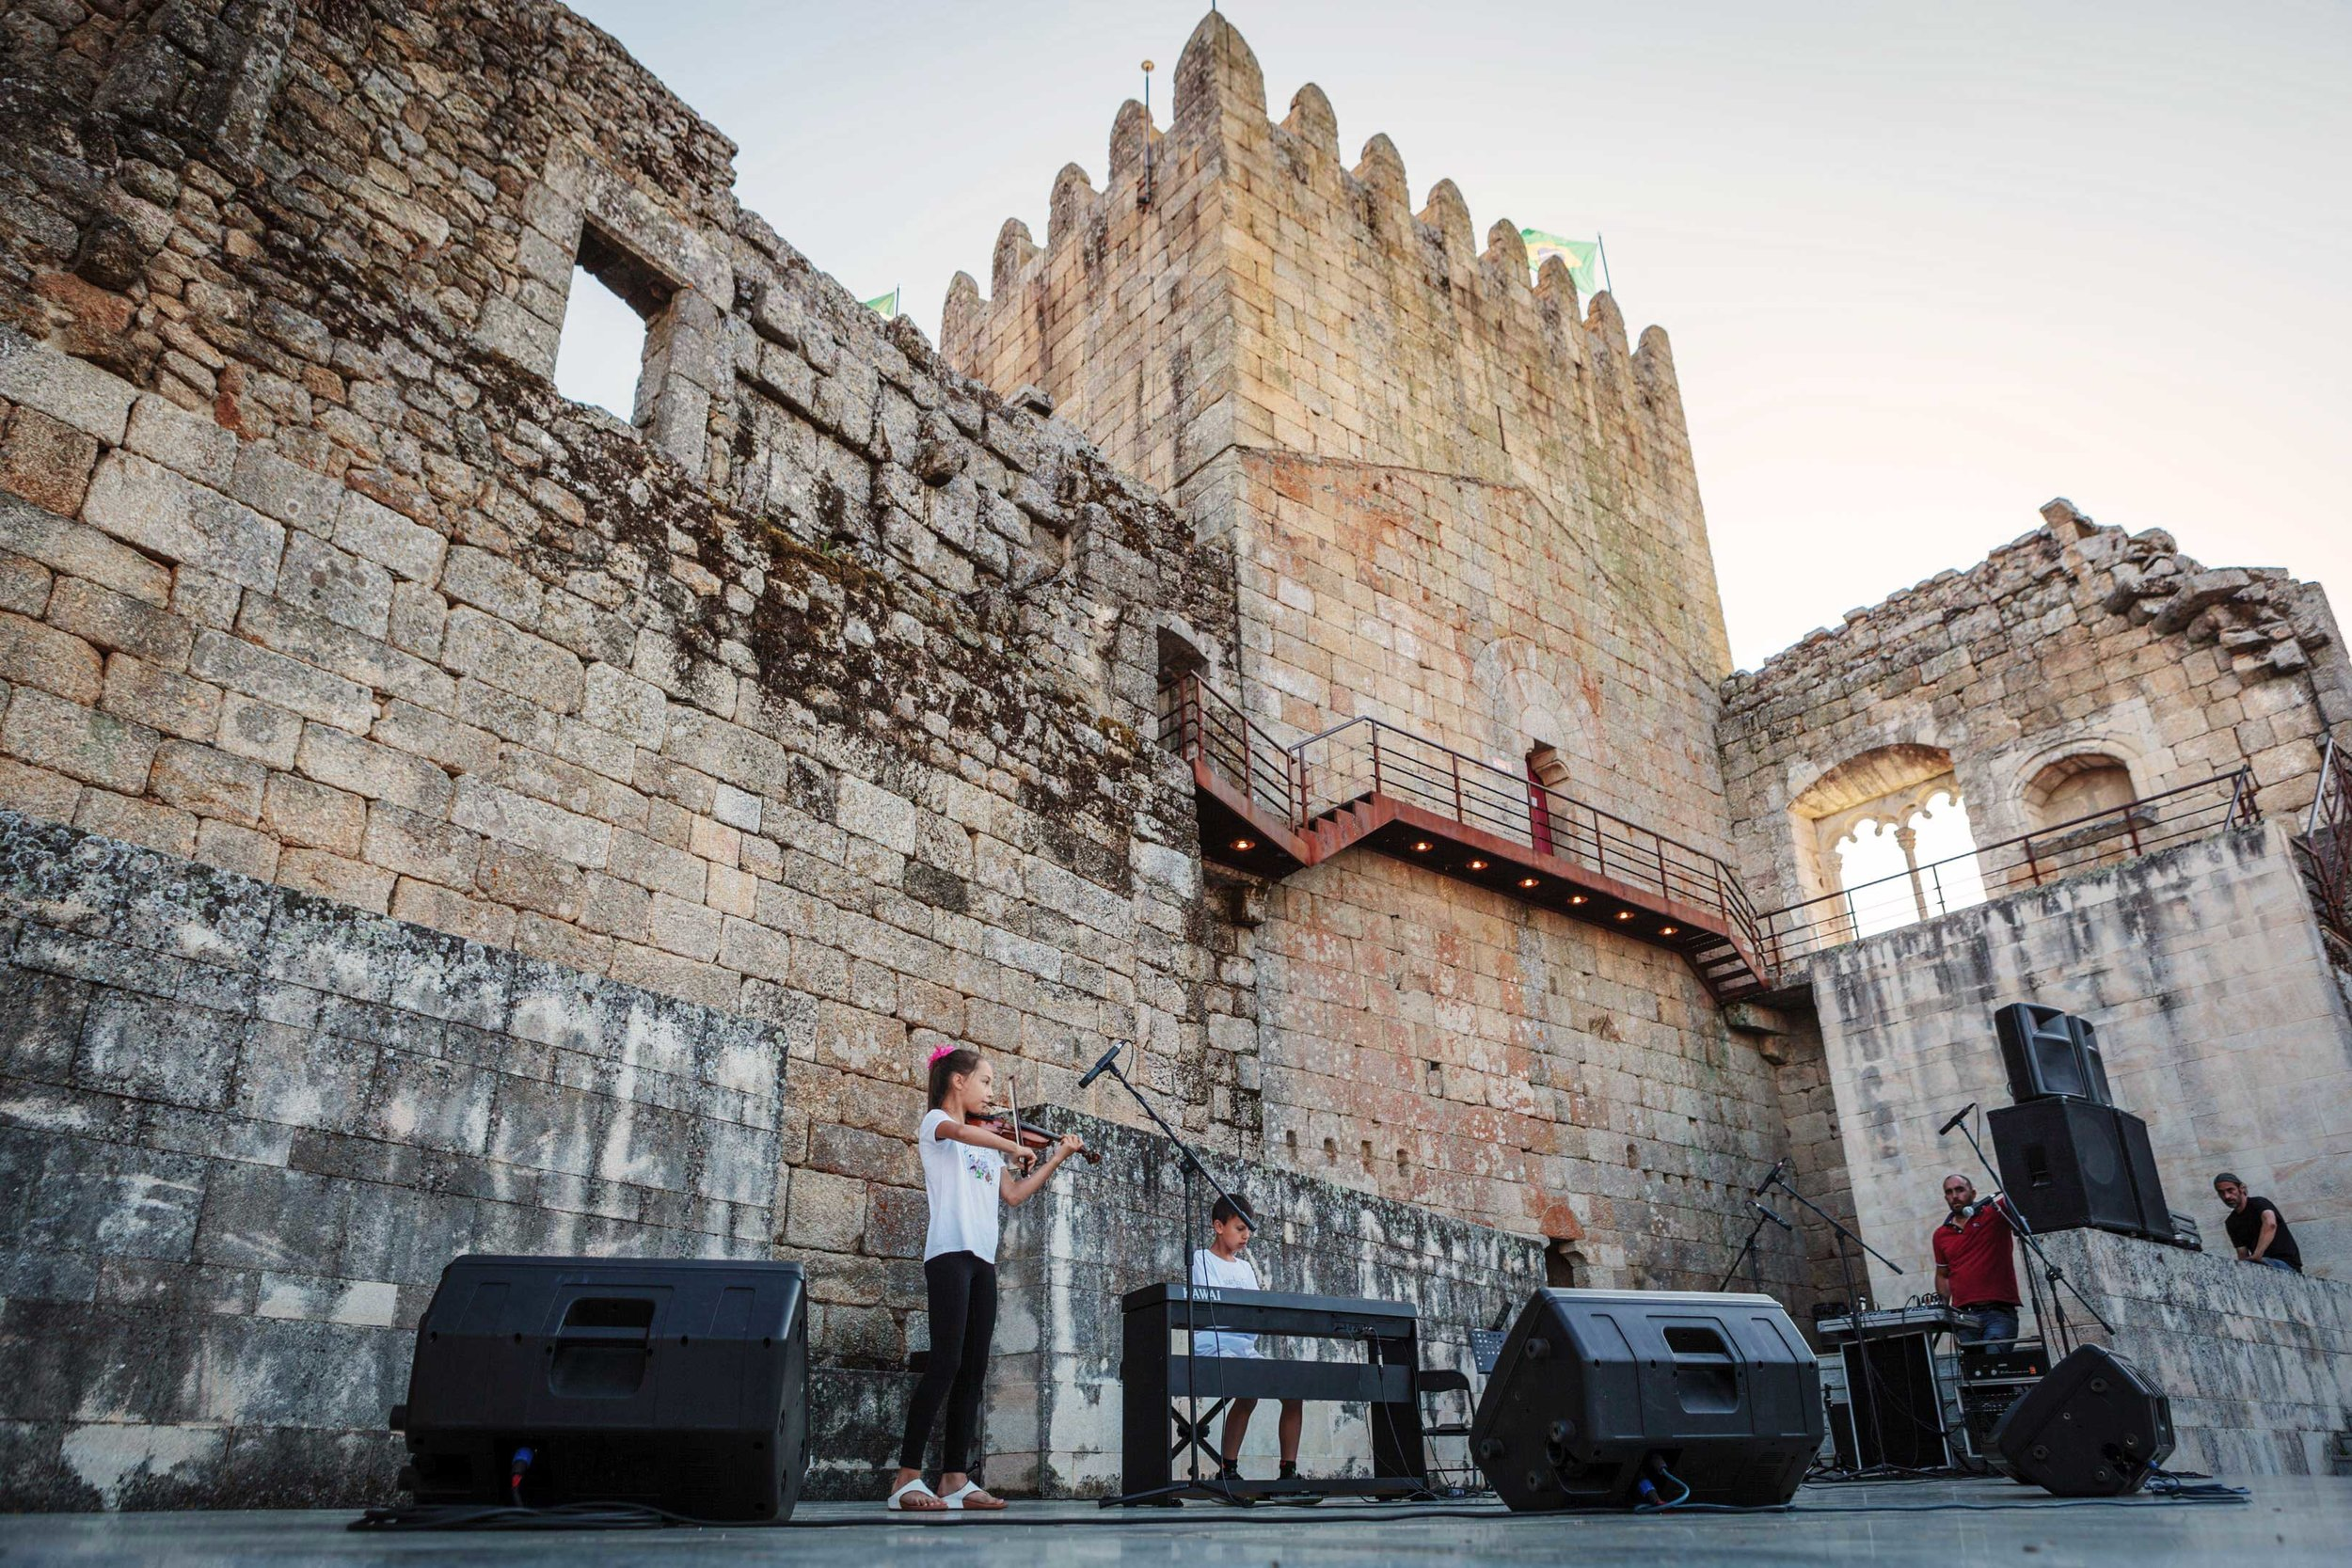 Students of the Bendada Music Festival performing at the Castle of Belmonte.